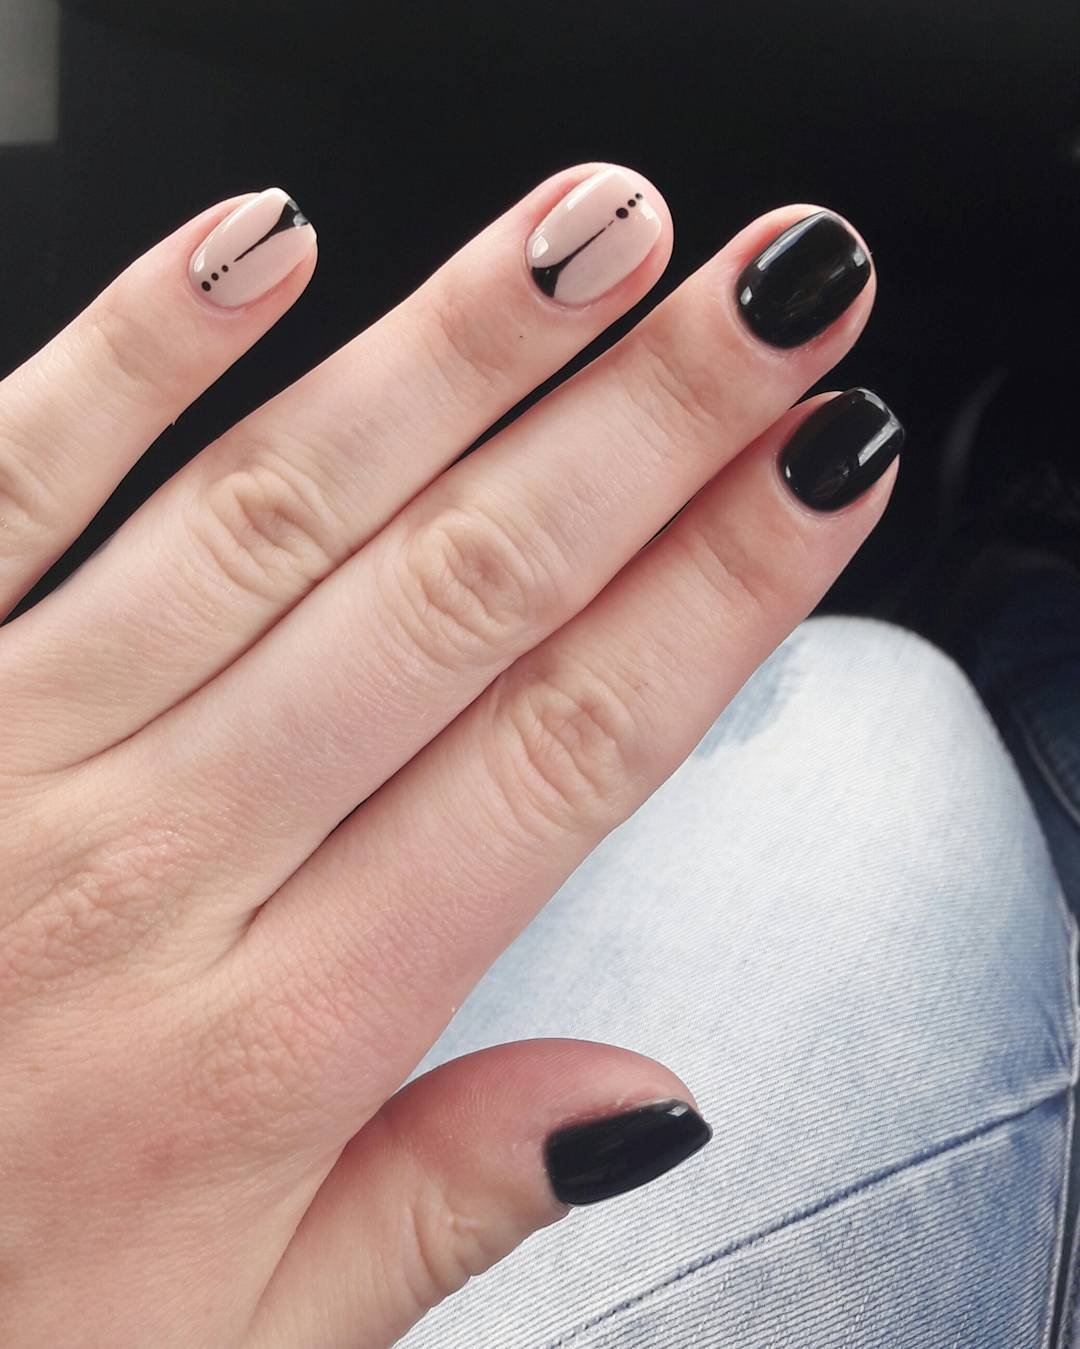 Black Squared Nails with Neutral Exceptional Nail